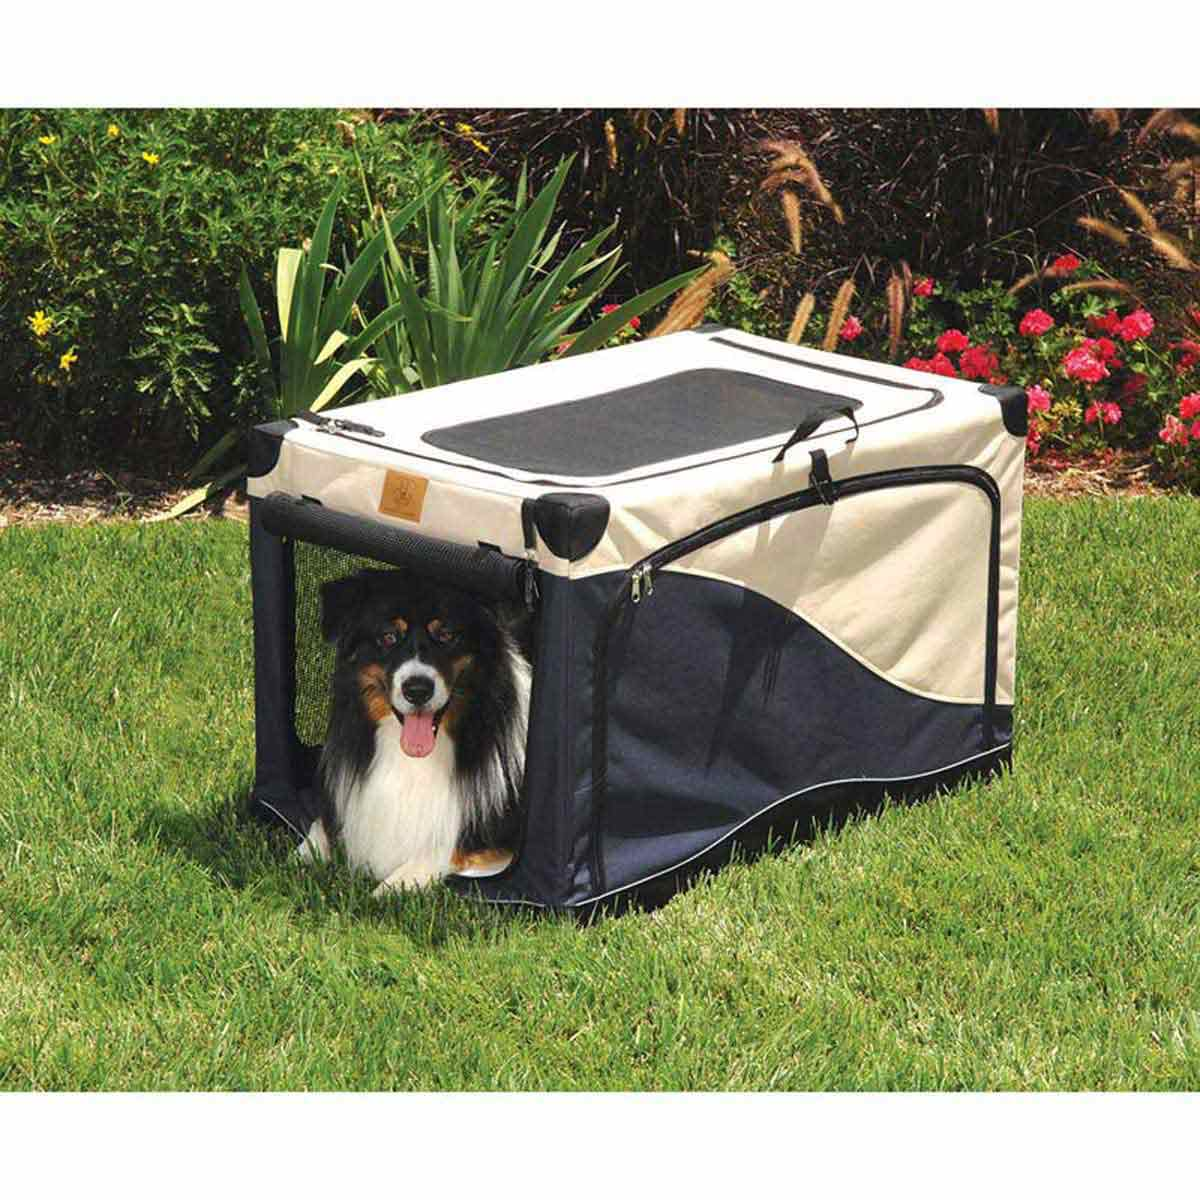 Precision Soft Side Crate for Dogs or Cats - 30 inches by 20 inches by 19 inches